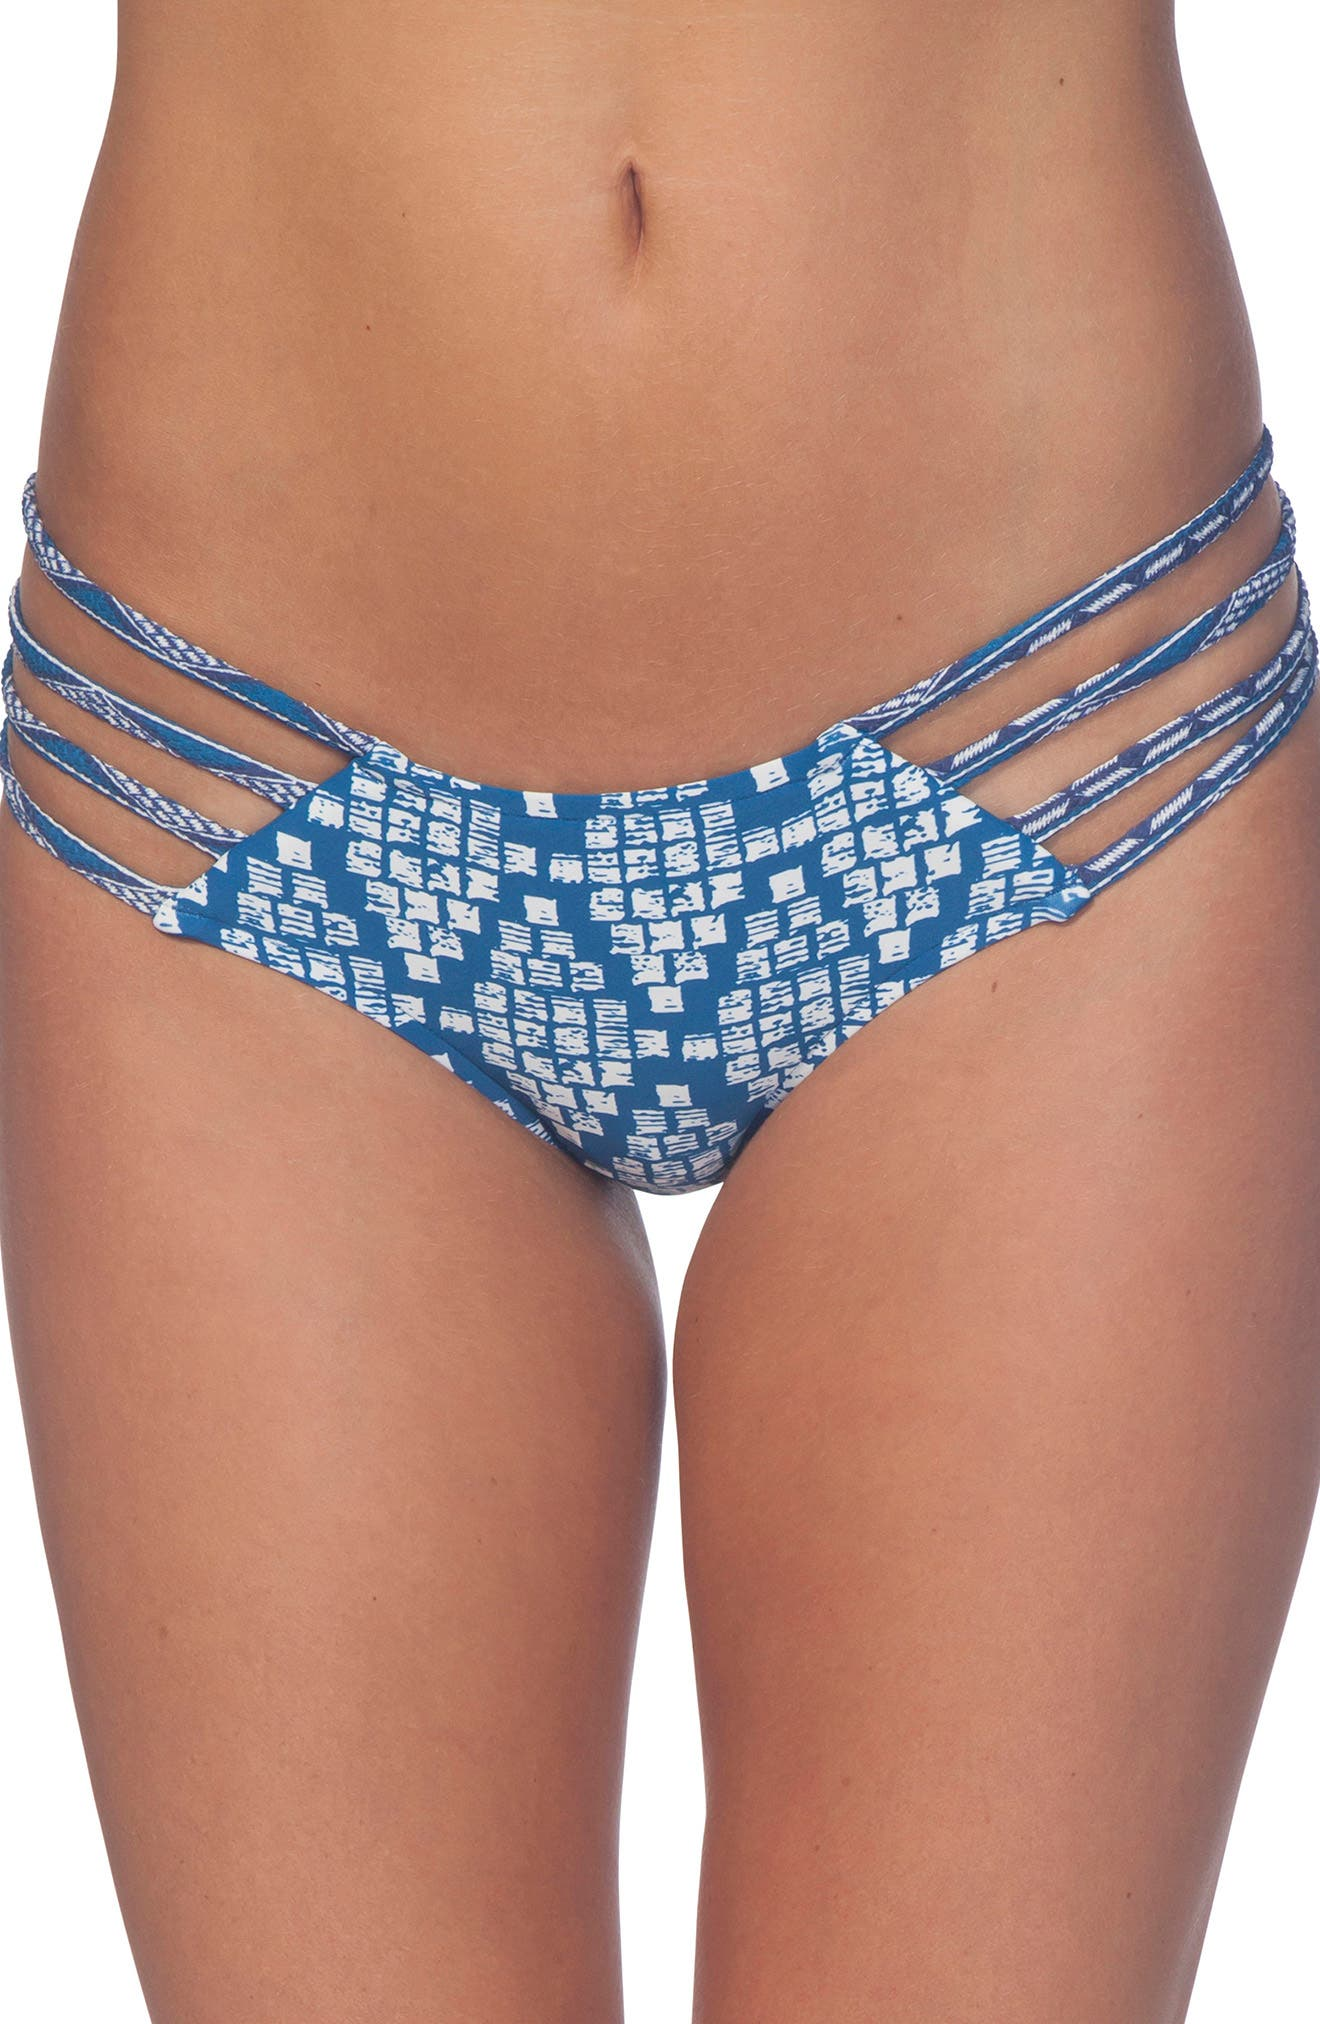 South Winds Luxe Hipster Bikini Bottoms,                         Main,                         color, Blue